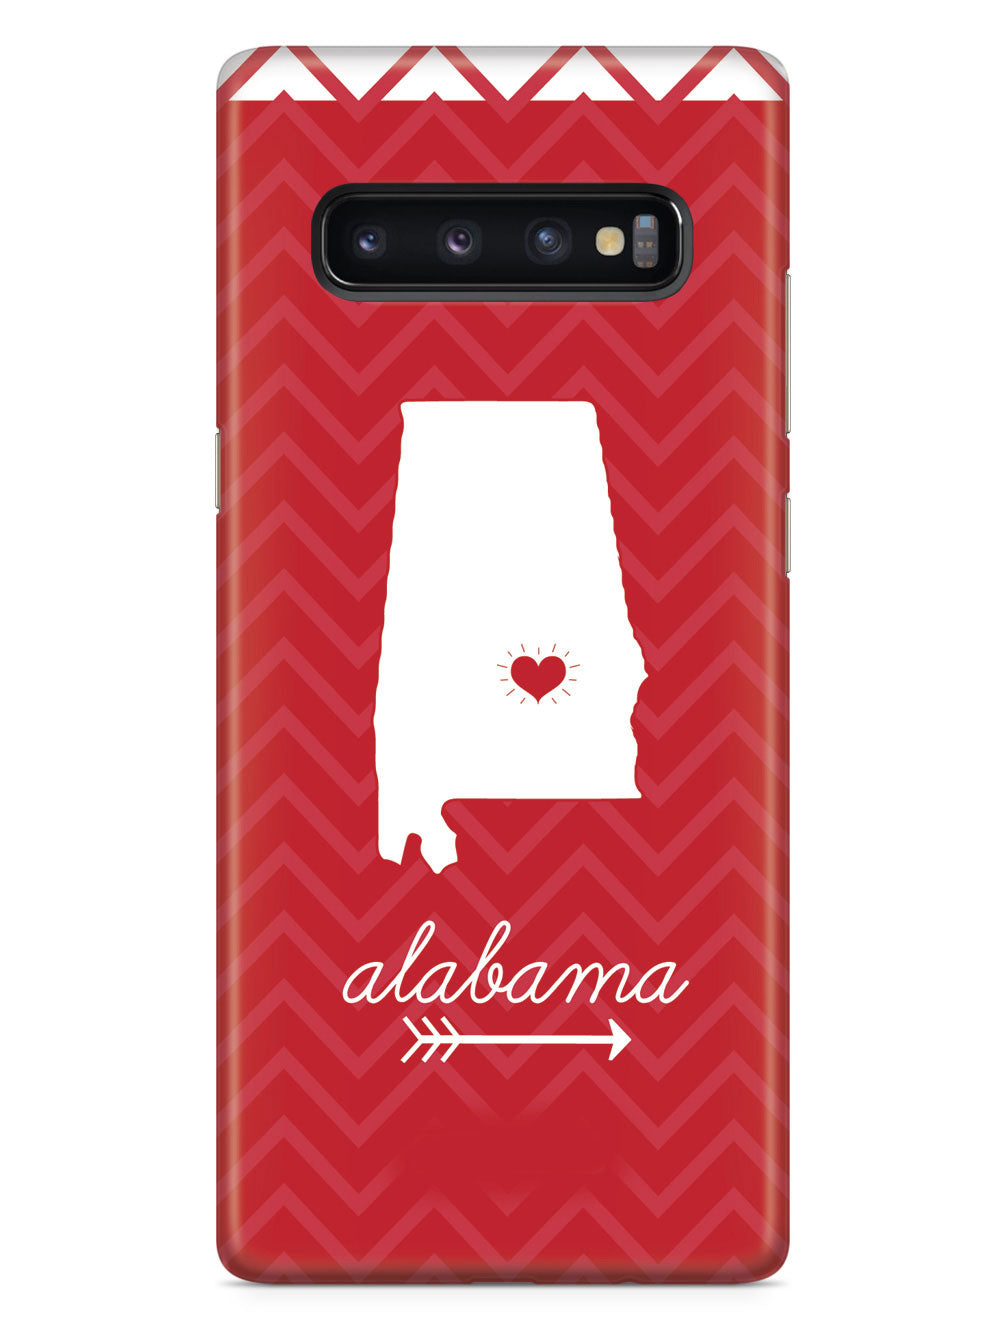 Alabama Chevron Pattern State Case